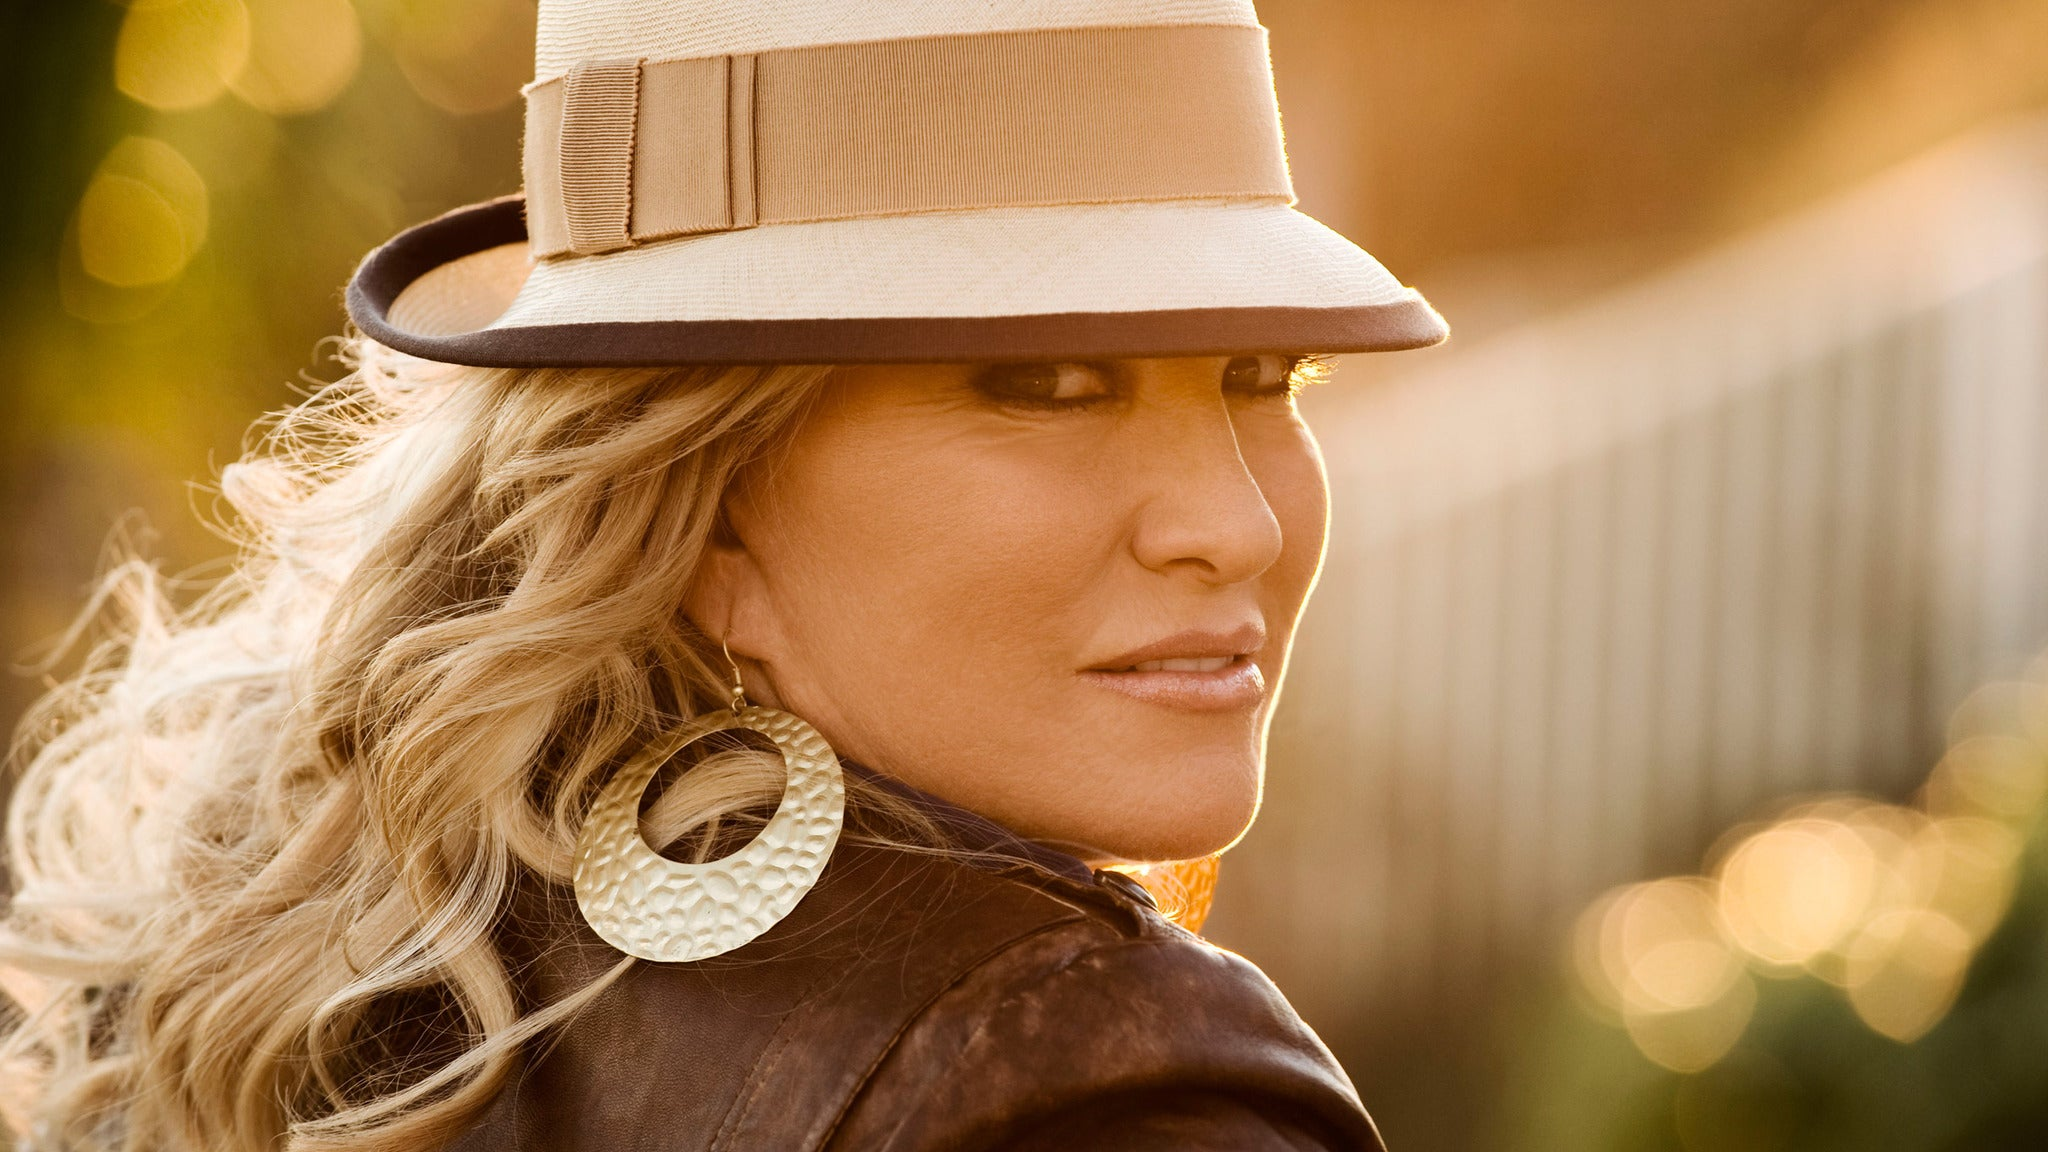 SORRY, THIS EVENT IS NO LONGER ACTIVE<br>Tanya Tucker at Ridgefield Playhouse - Ridgefield, CT 06877